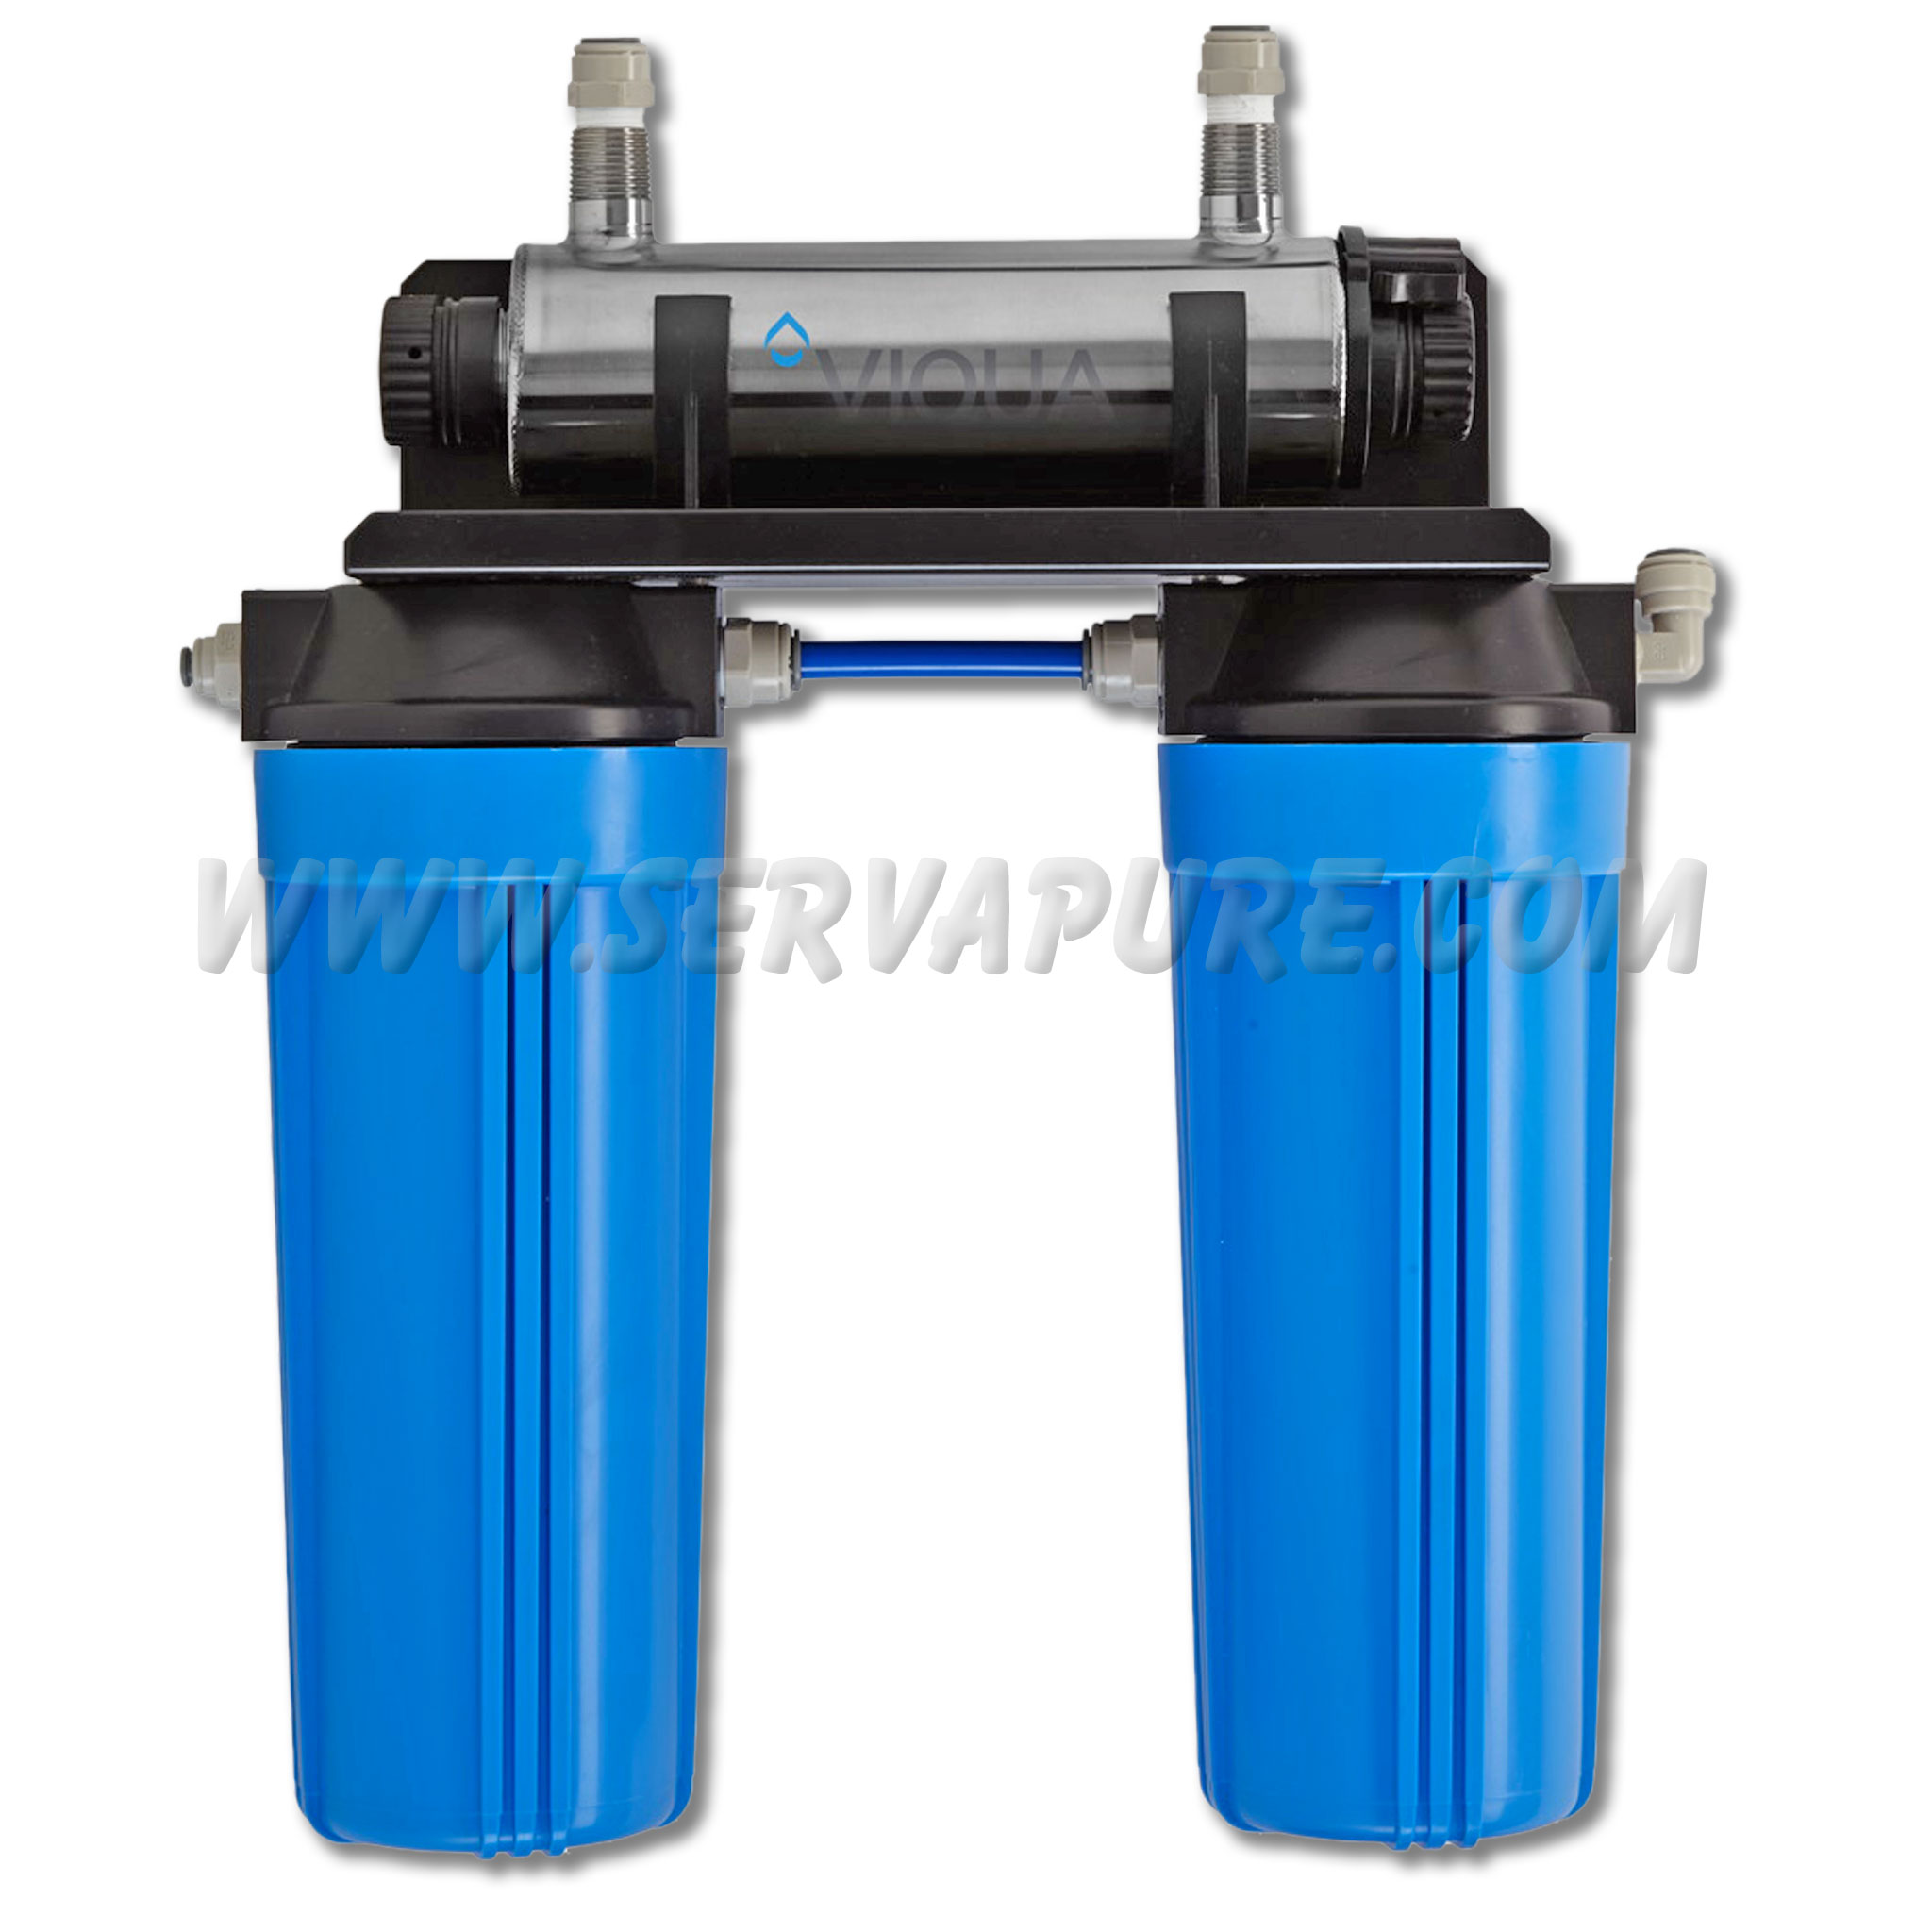 Viqua Vt1 Dws Drinking Water Uv System 1 Gpm Serv A Pure